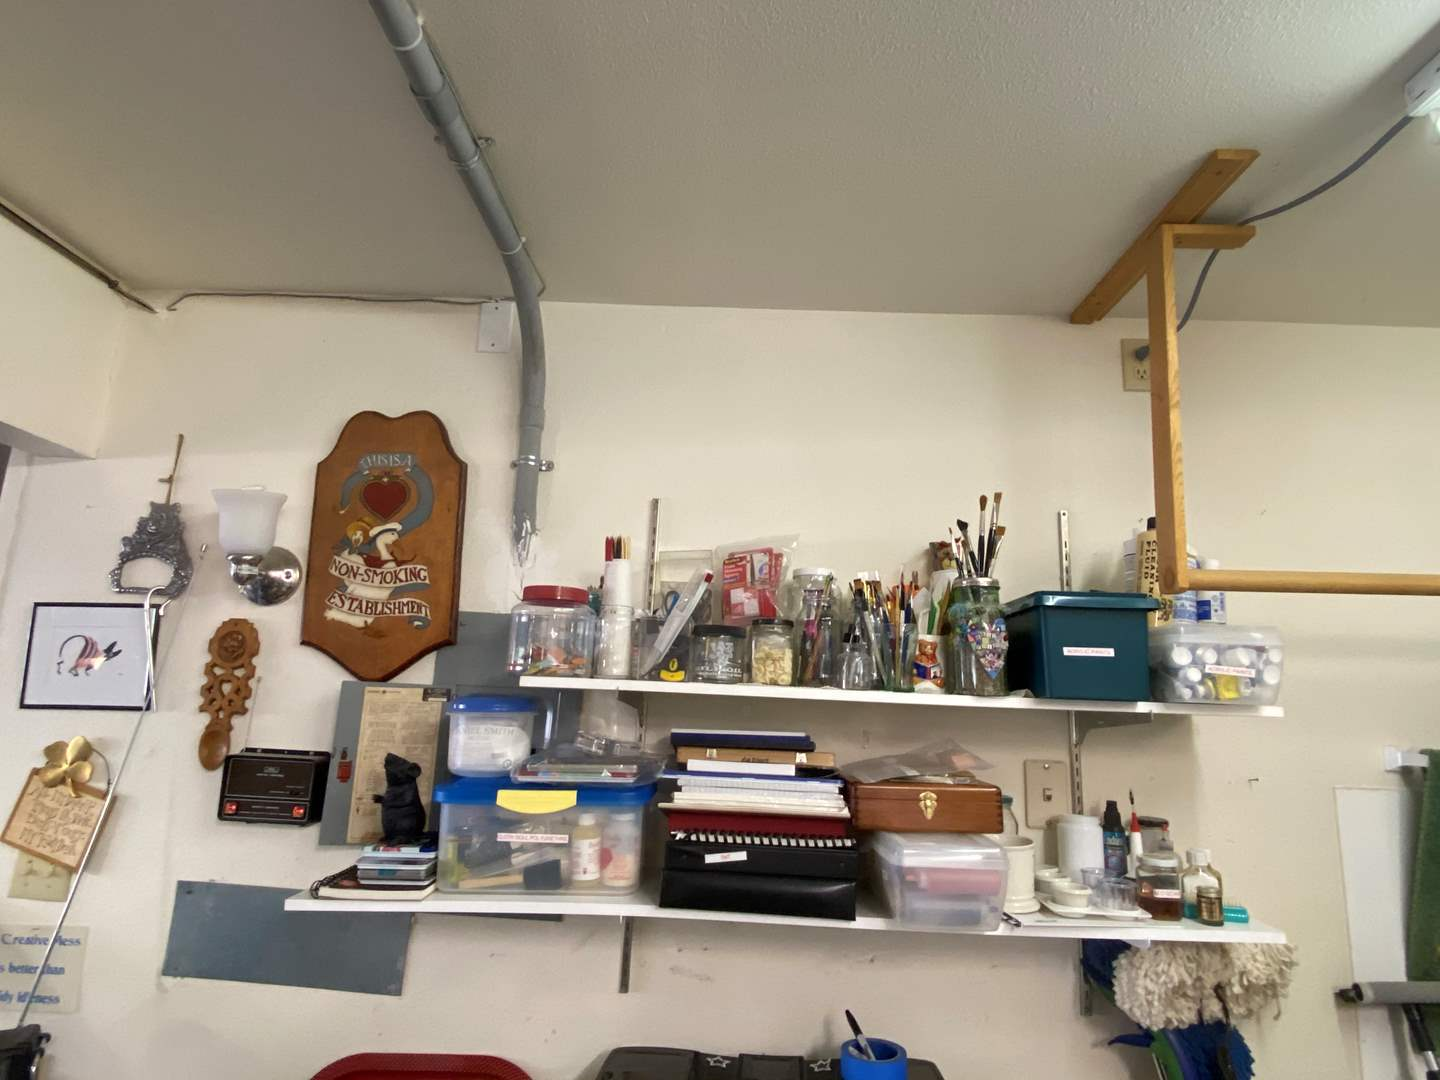 Lot # 270 - Contents of Both Shelves(Does Not Include the Non Smoking Establishment Sign) (main image)